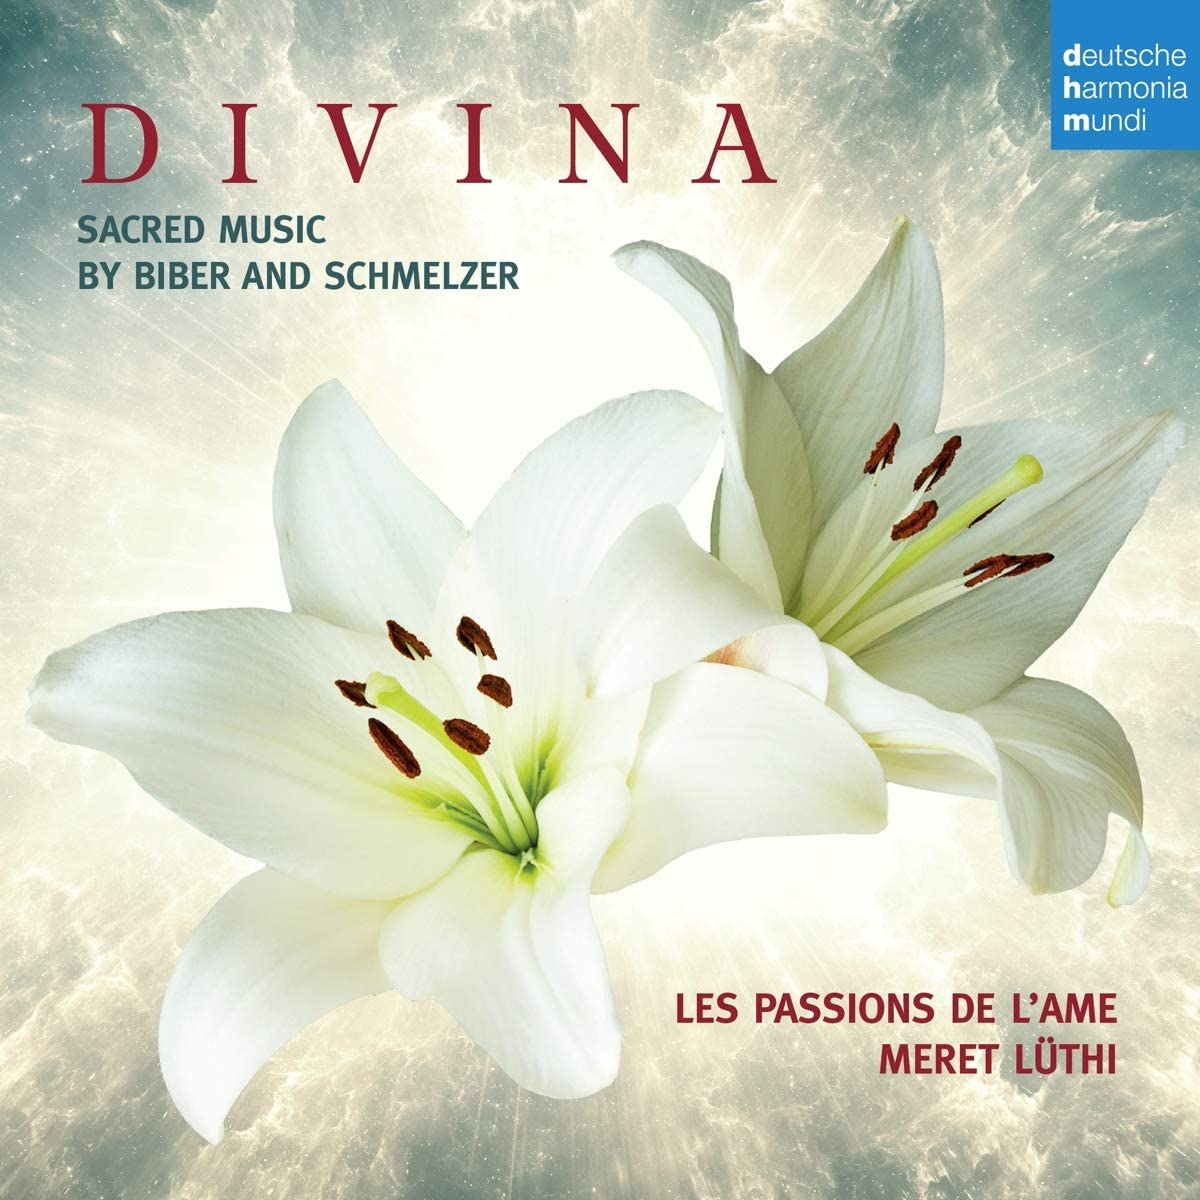 Review of Divina: Sacred Music by Biber and Schmelzer